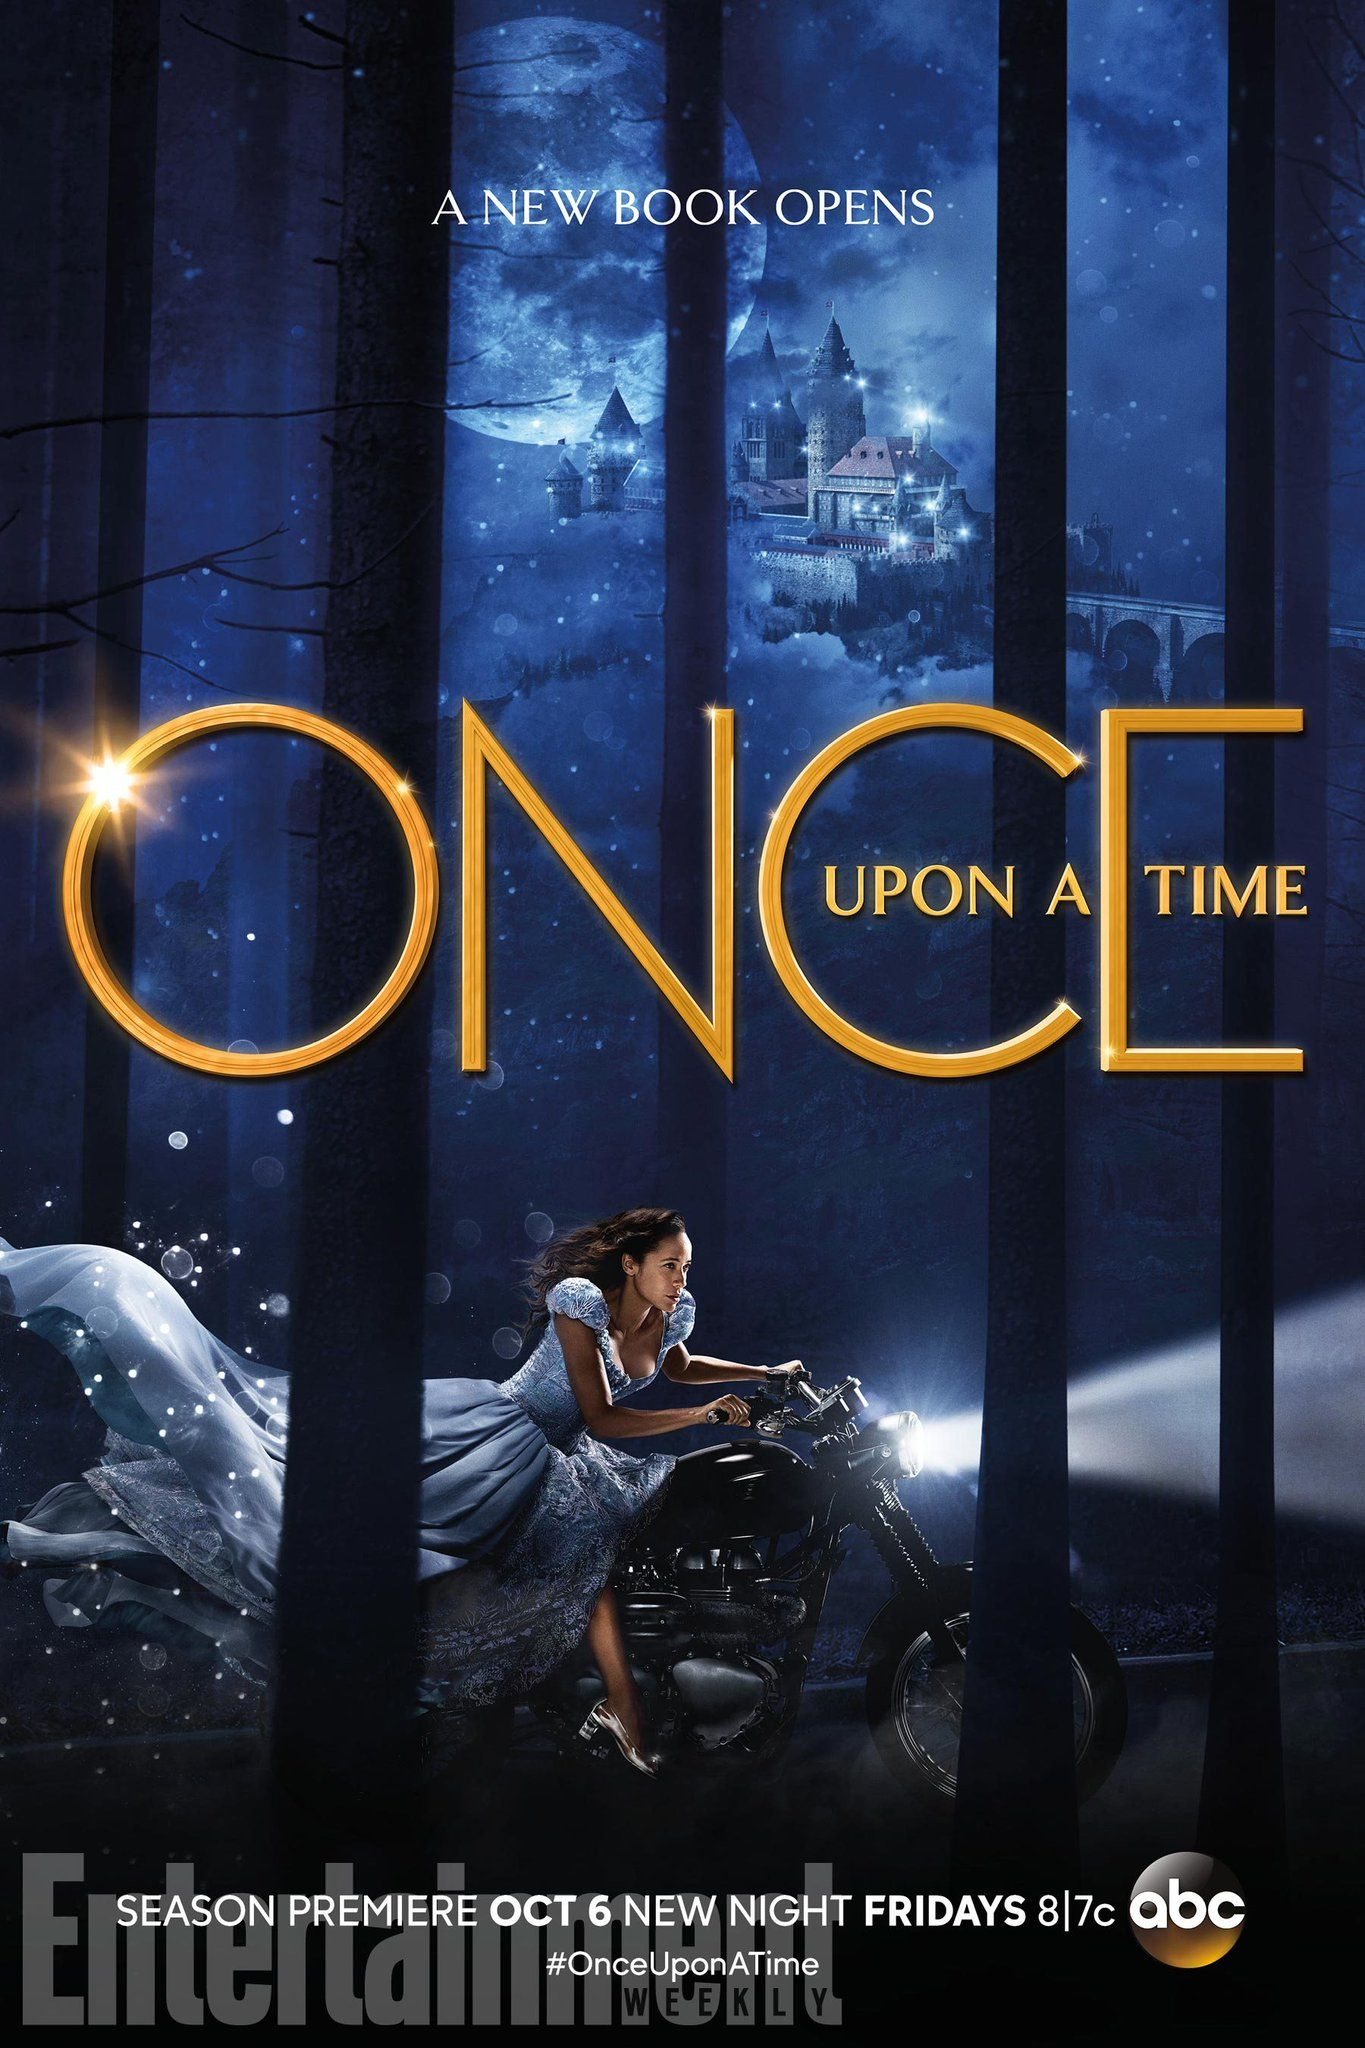 Natalie Abrams On Twitter Once Upon A Time Tv Series To Watch Ouat